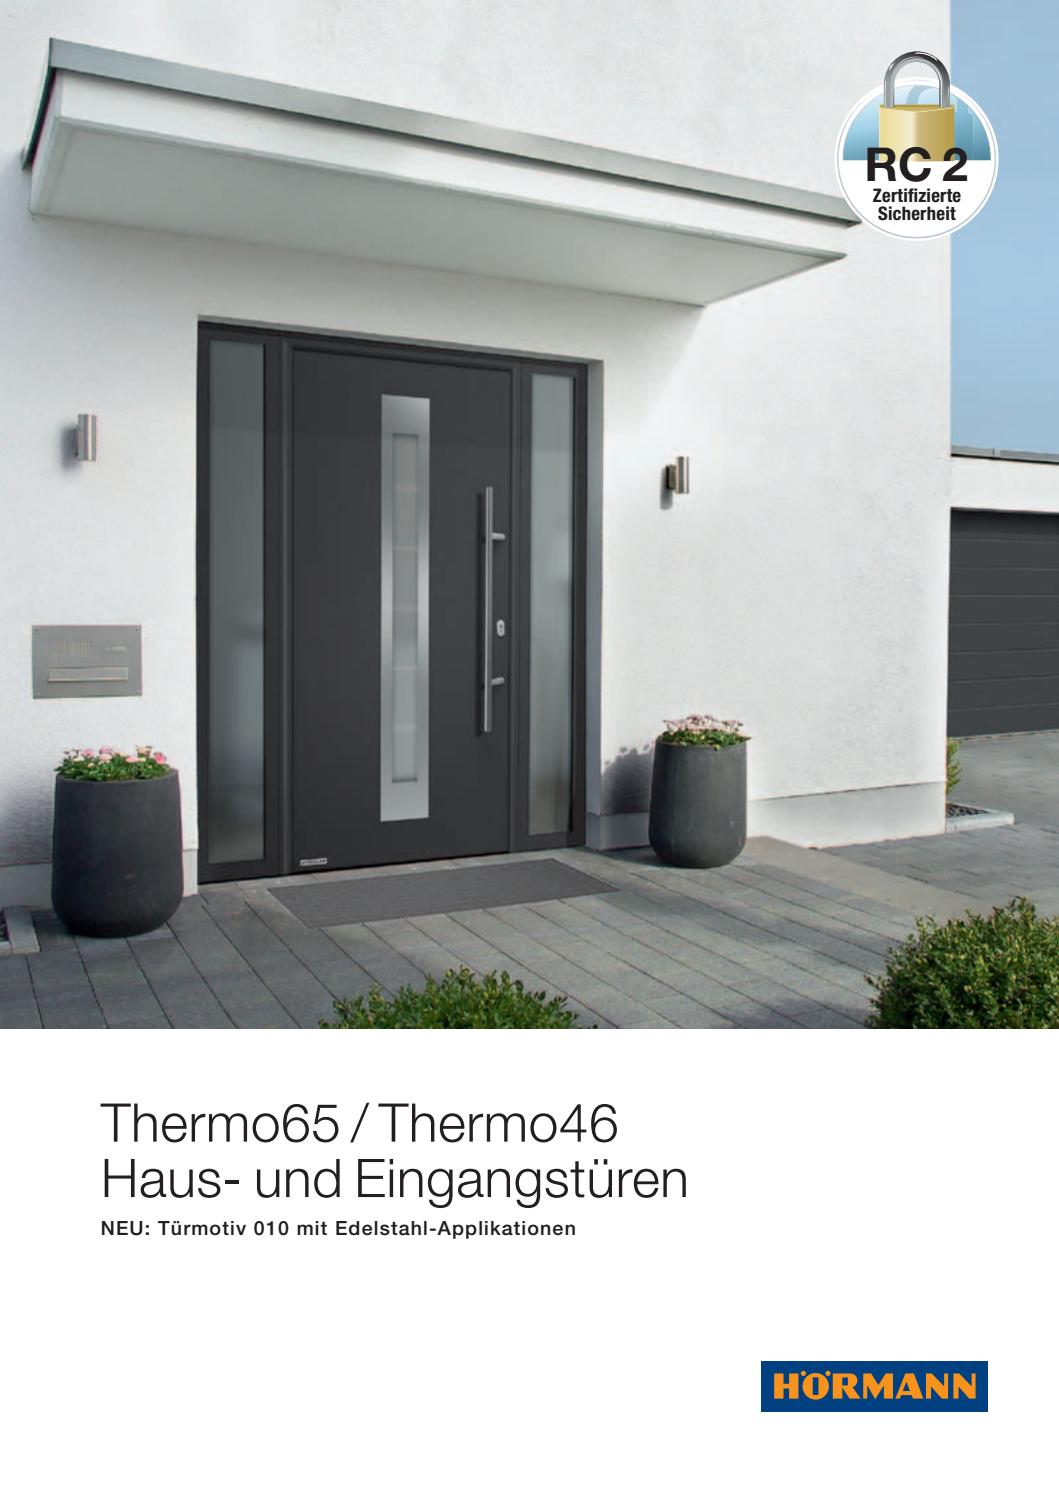 Hörmann Haustür Verbreiterungsprofil Hoermann Thermoproeingangstueren By Kaiser Design Issuu